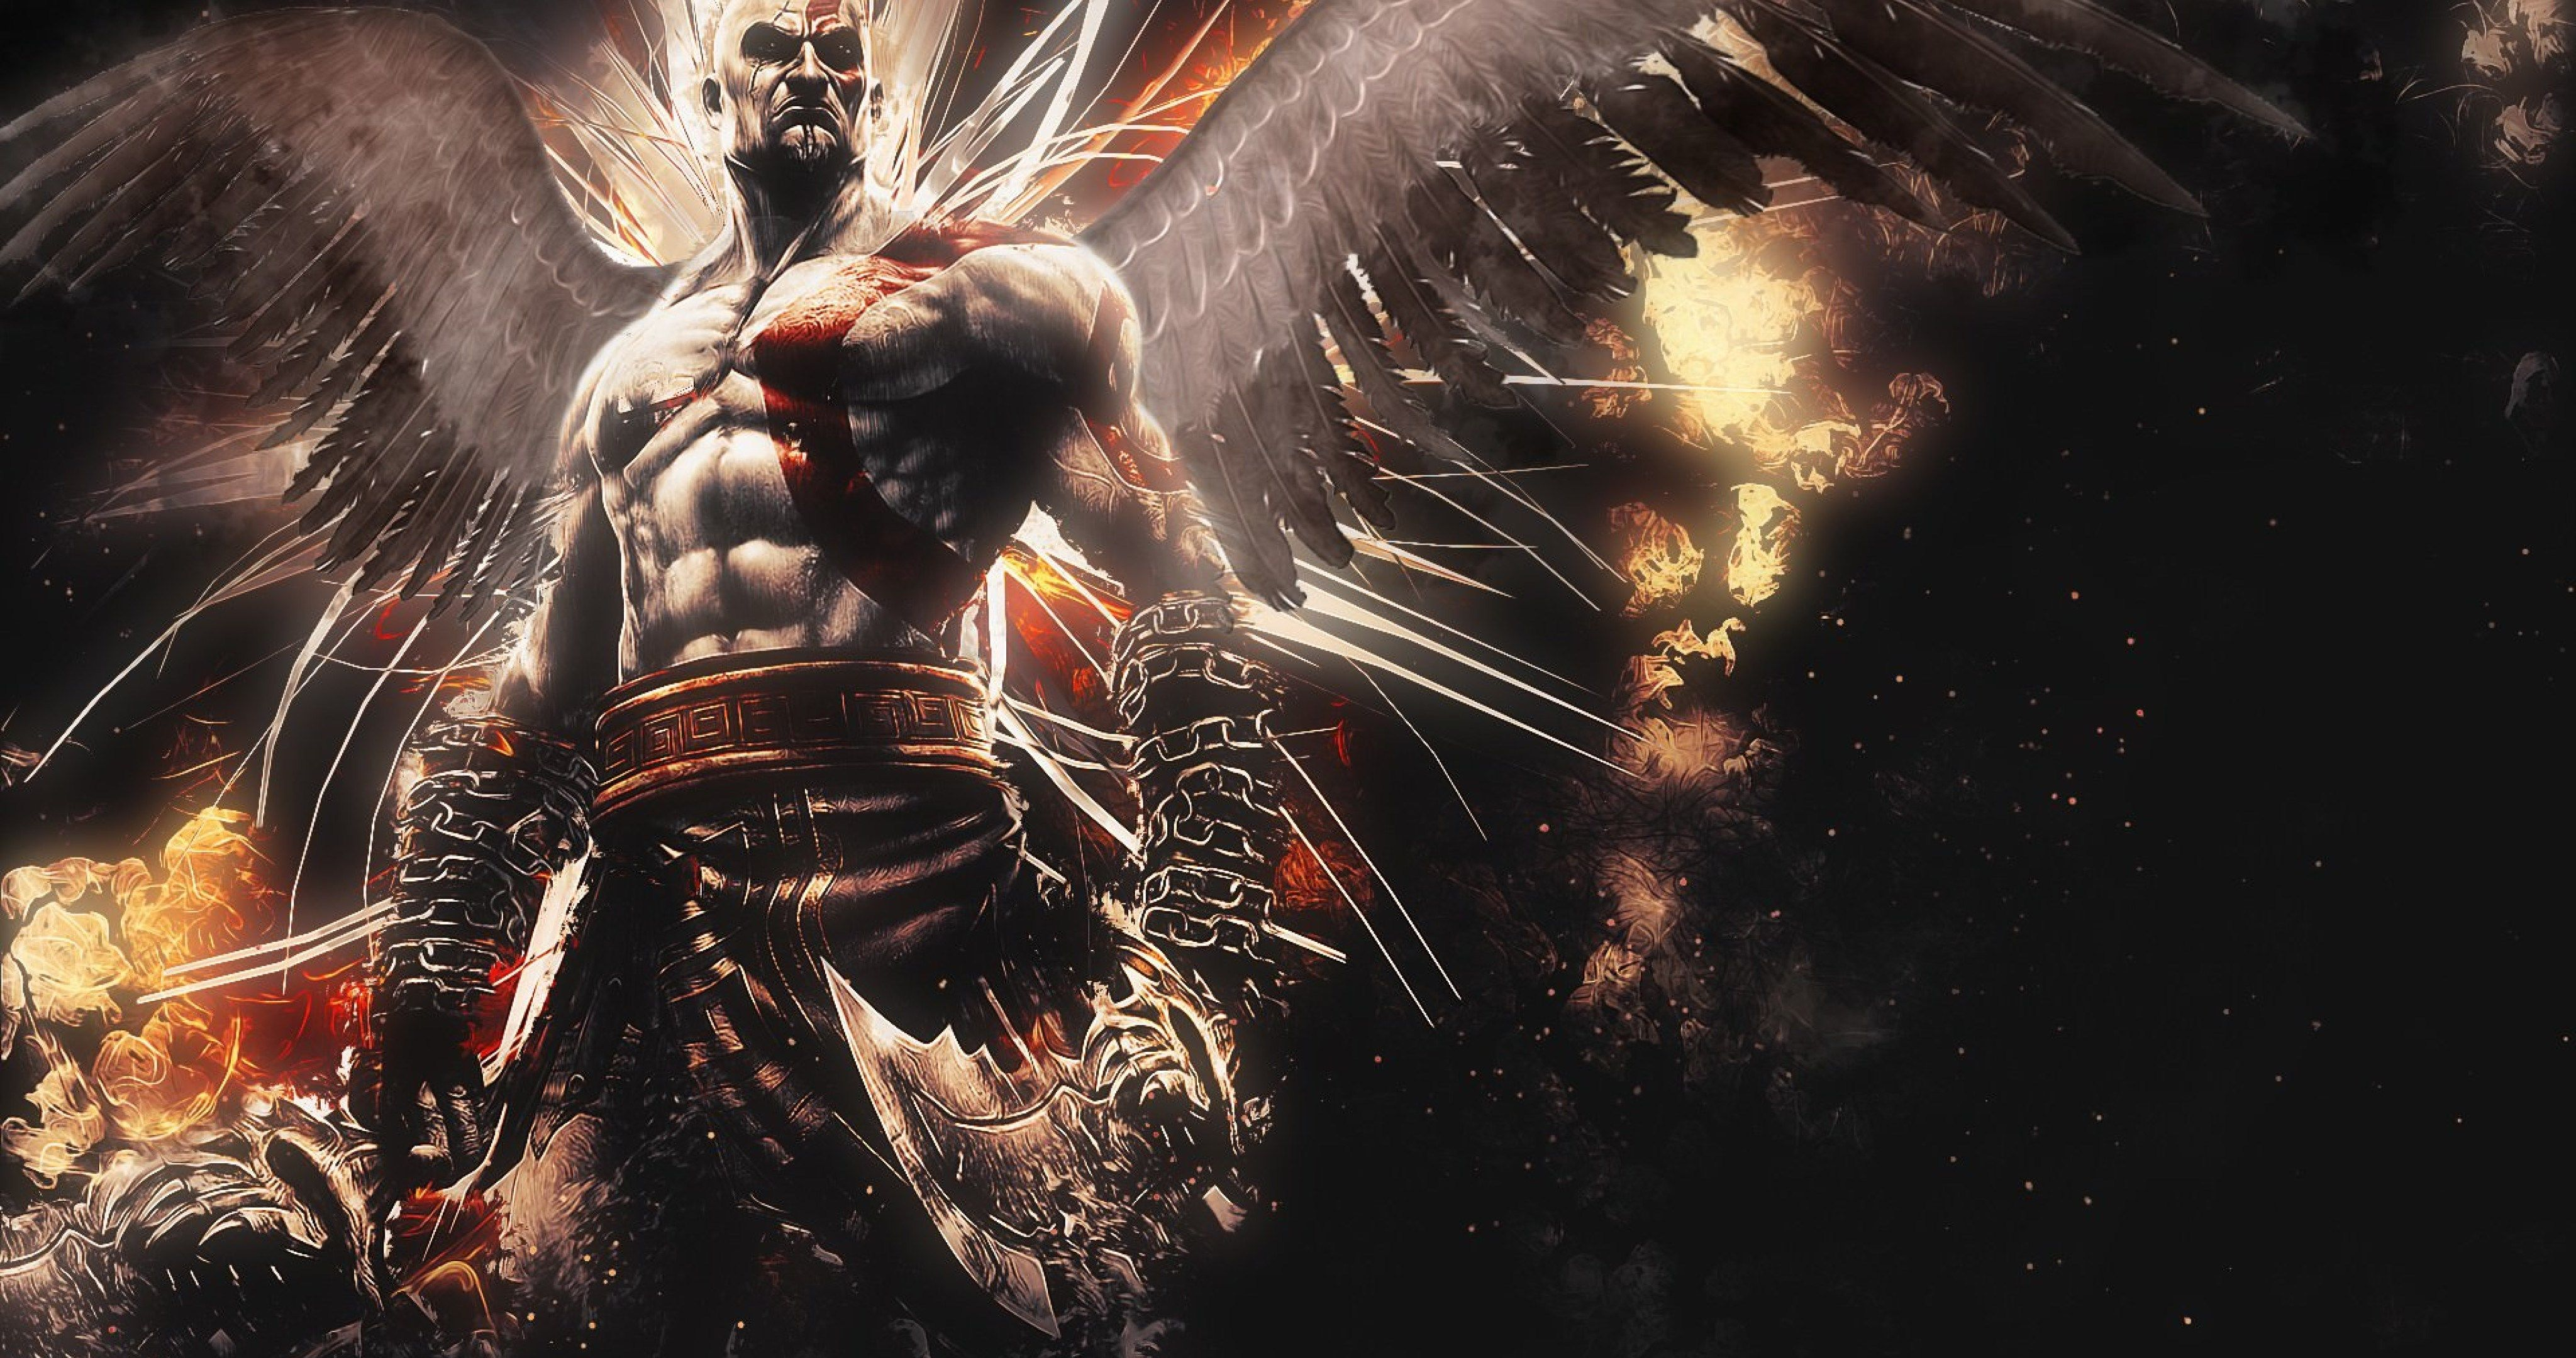 Fnatic Wallpaper Iphone God Of War Ascension Video Game 4k Ultra Hd Wallpaper